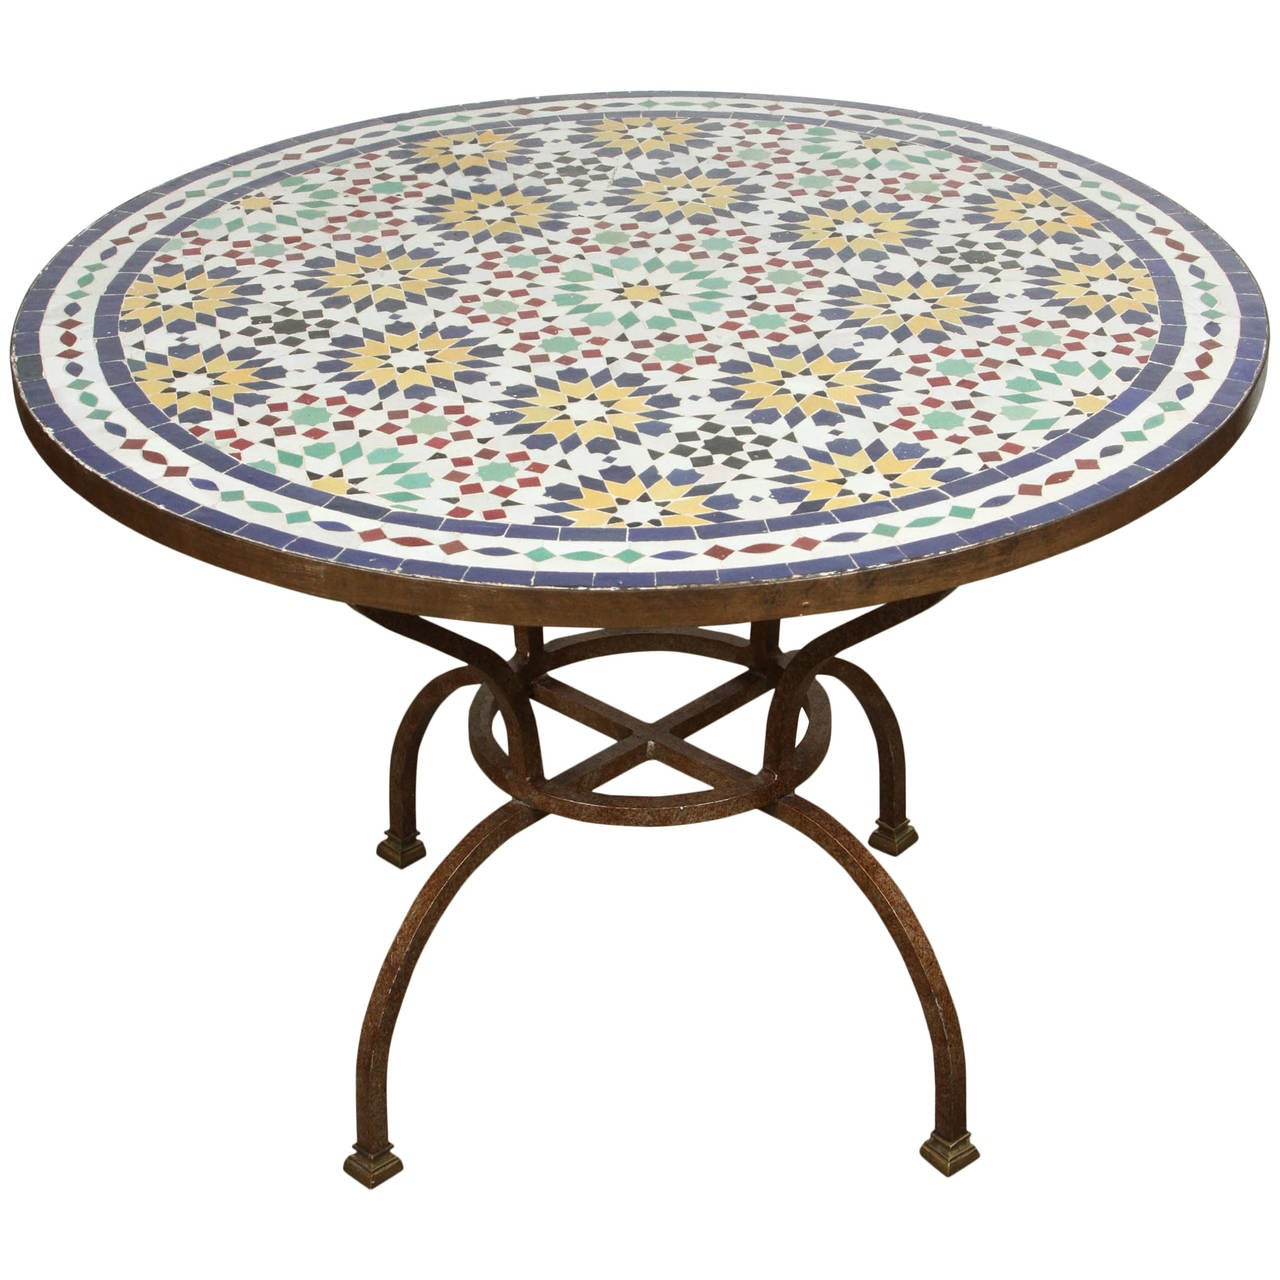 Moroccan Mosaic Tile Table from Fez at 1stdibs